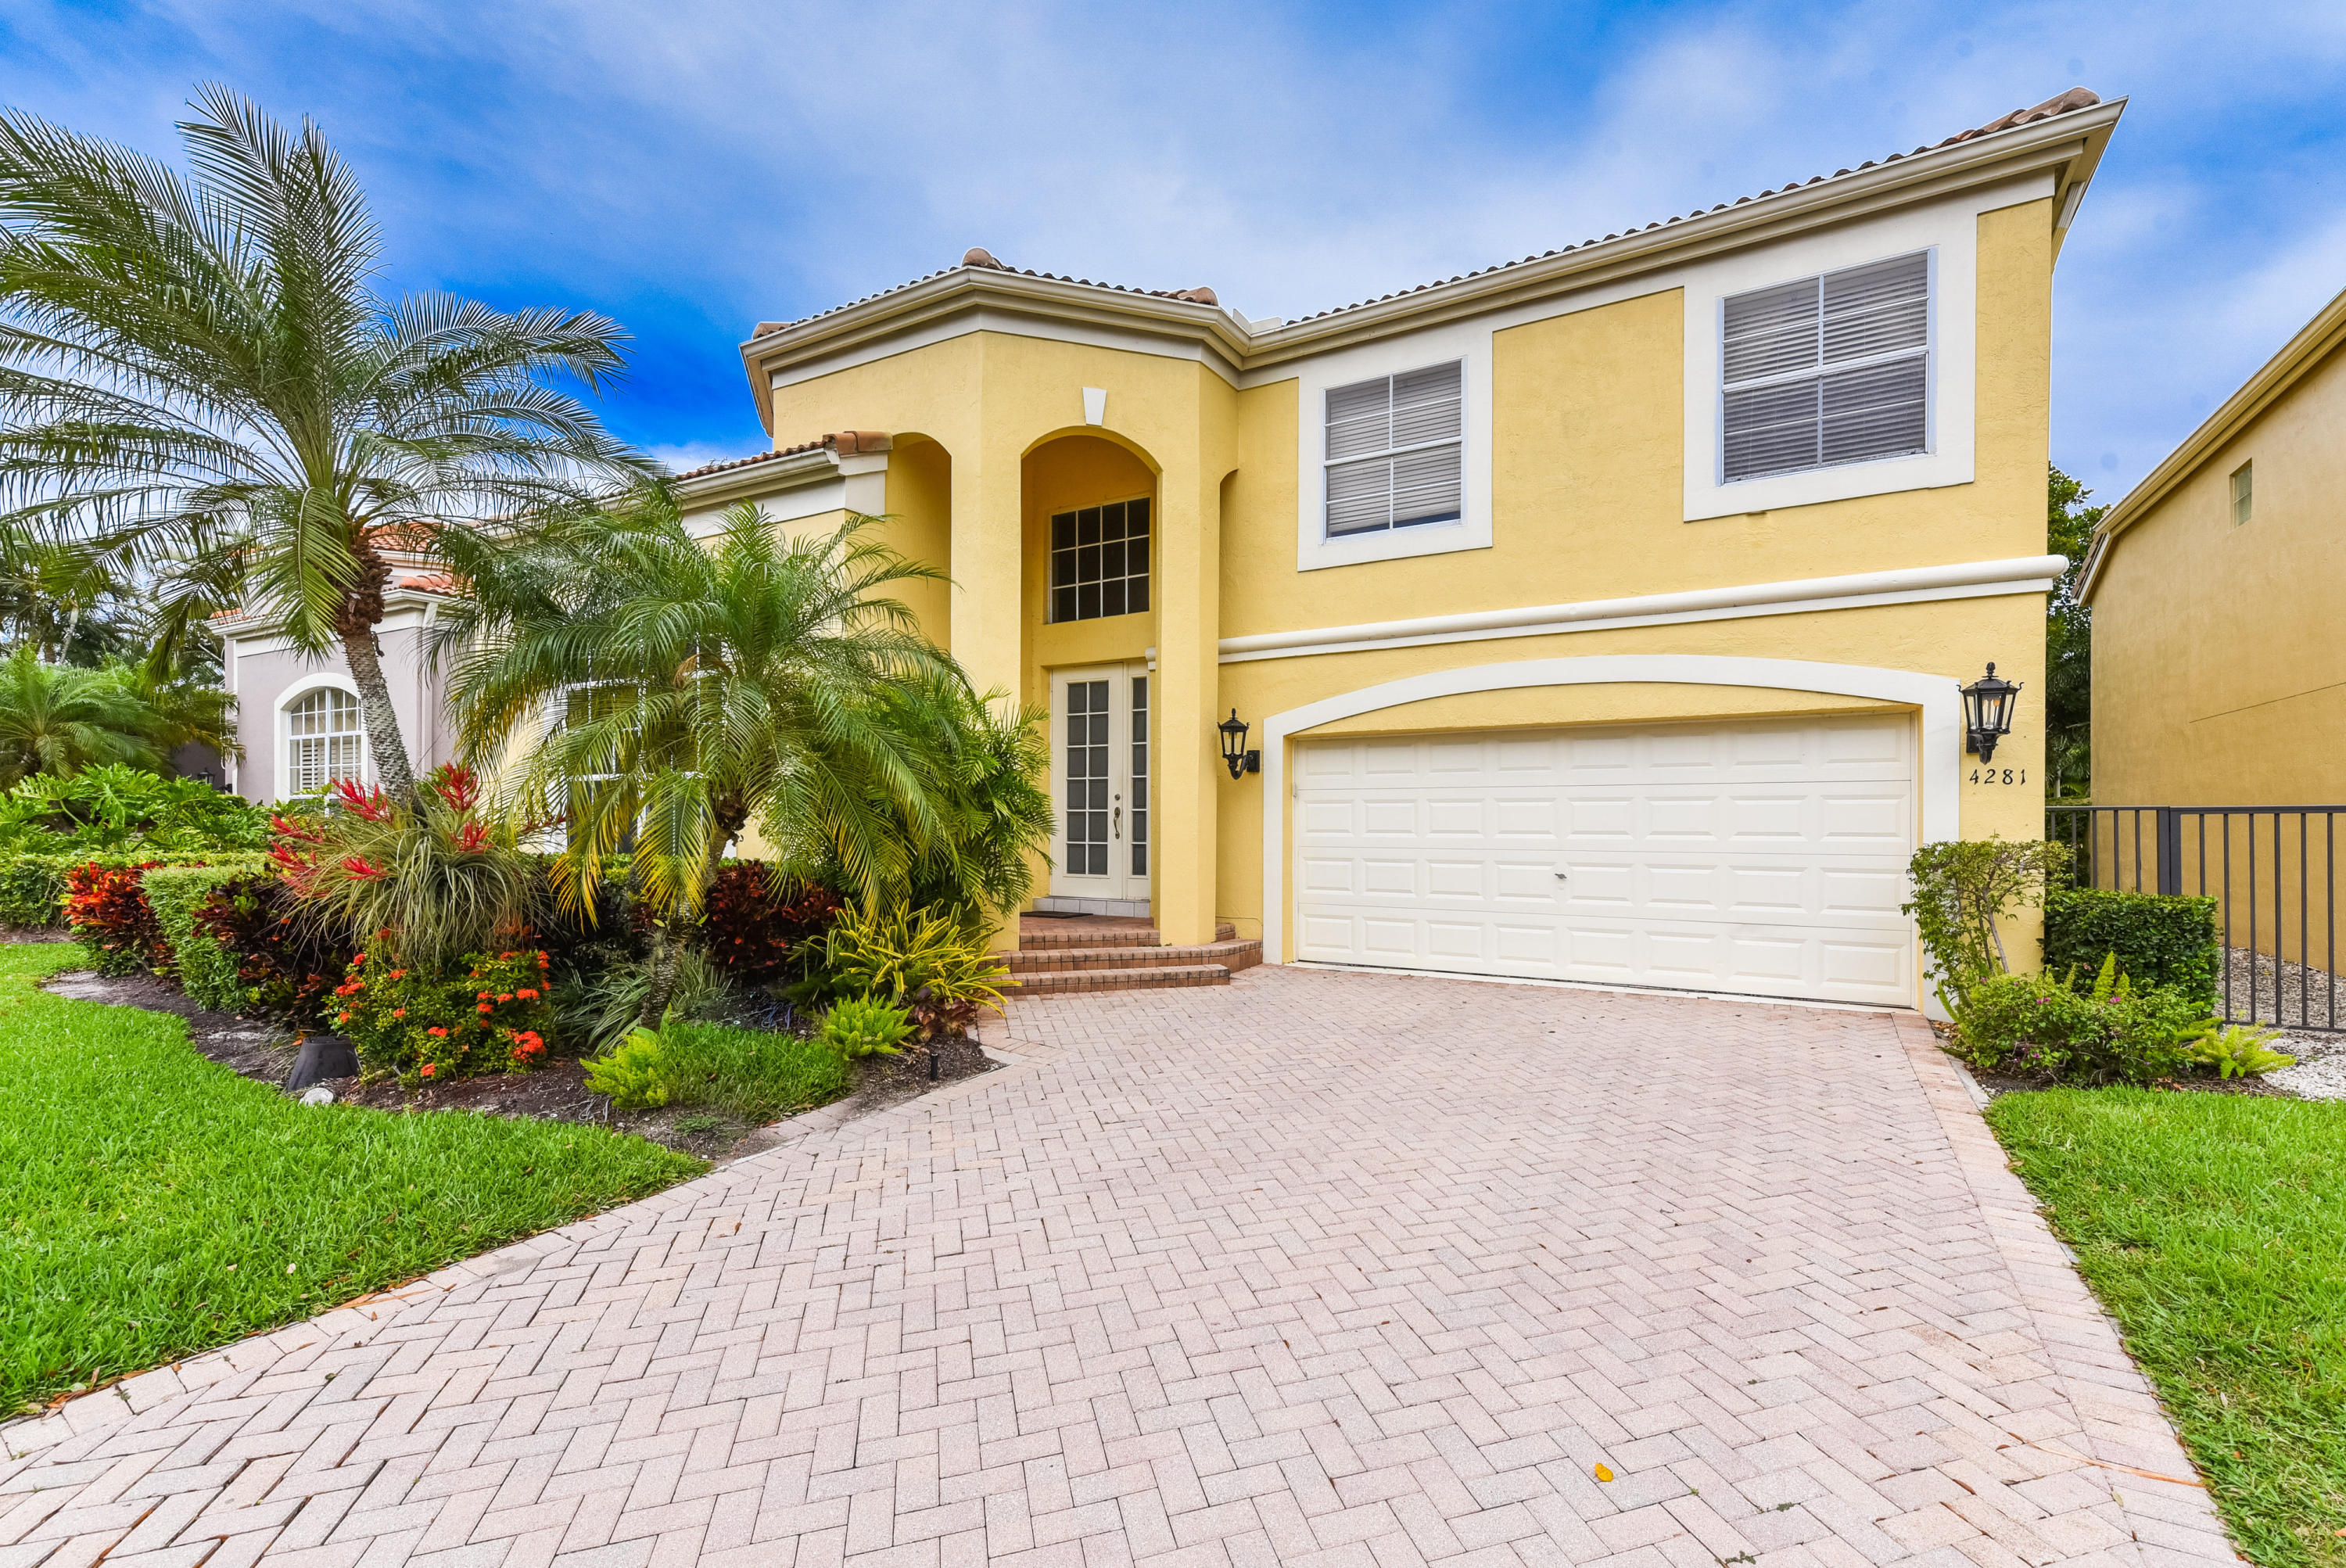 Details for 4281 66th Lane Nw, Boca Raton, FL 33496